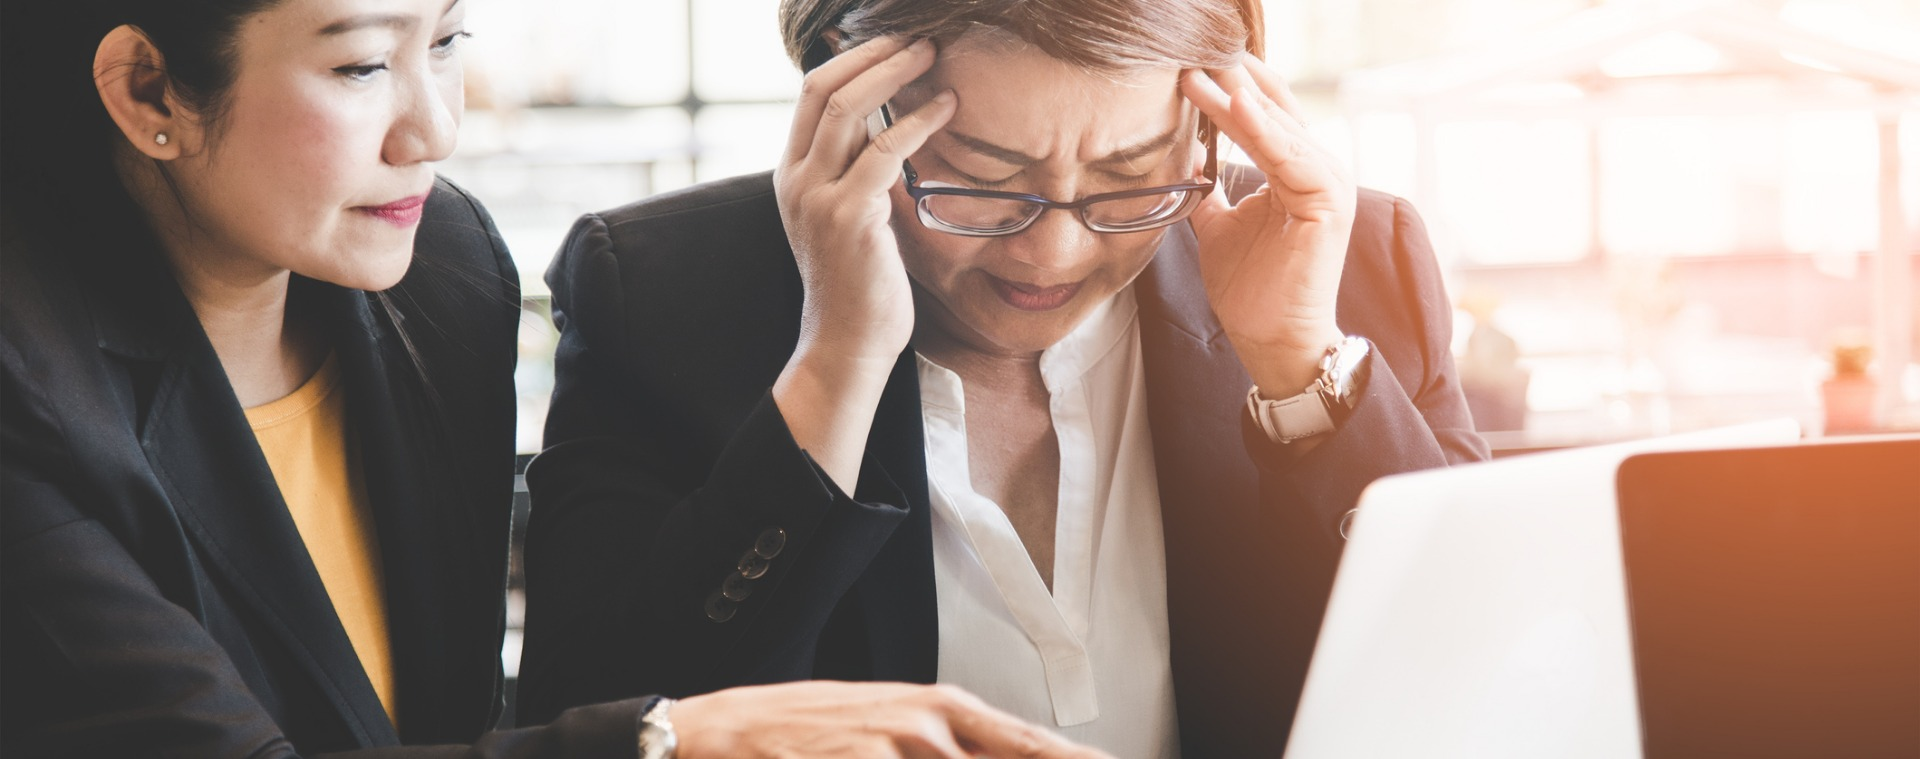 Tinnitus and Stress: Is There a Link Between the Two?